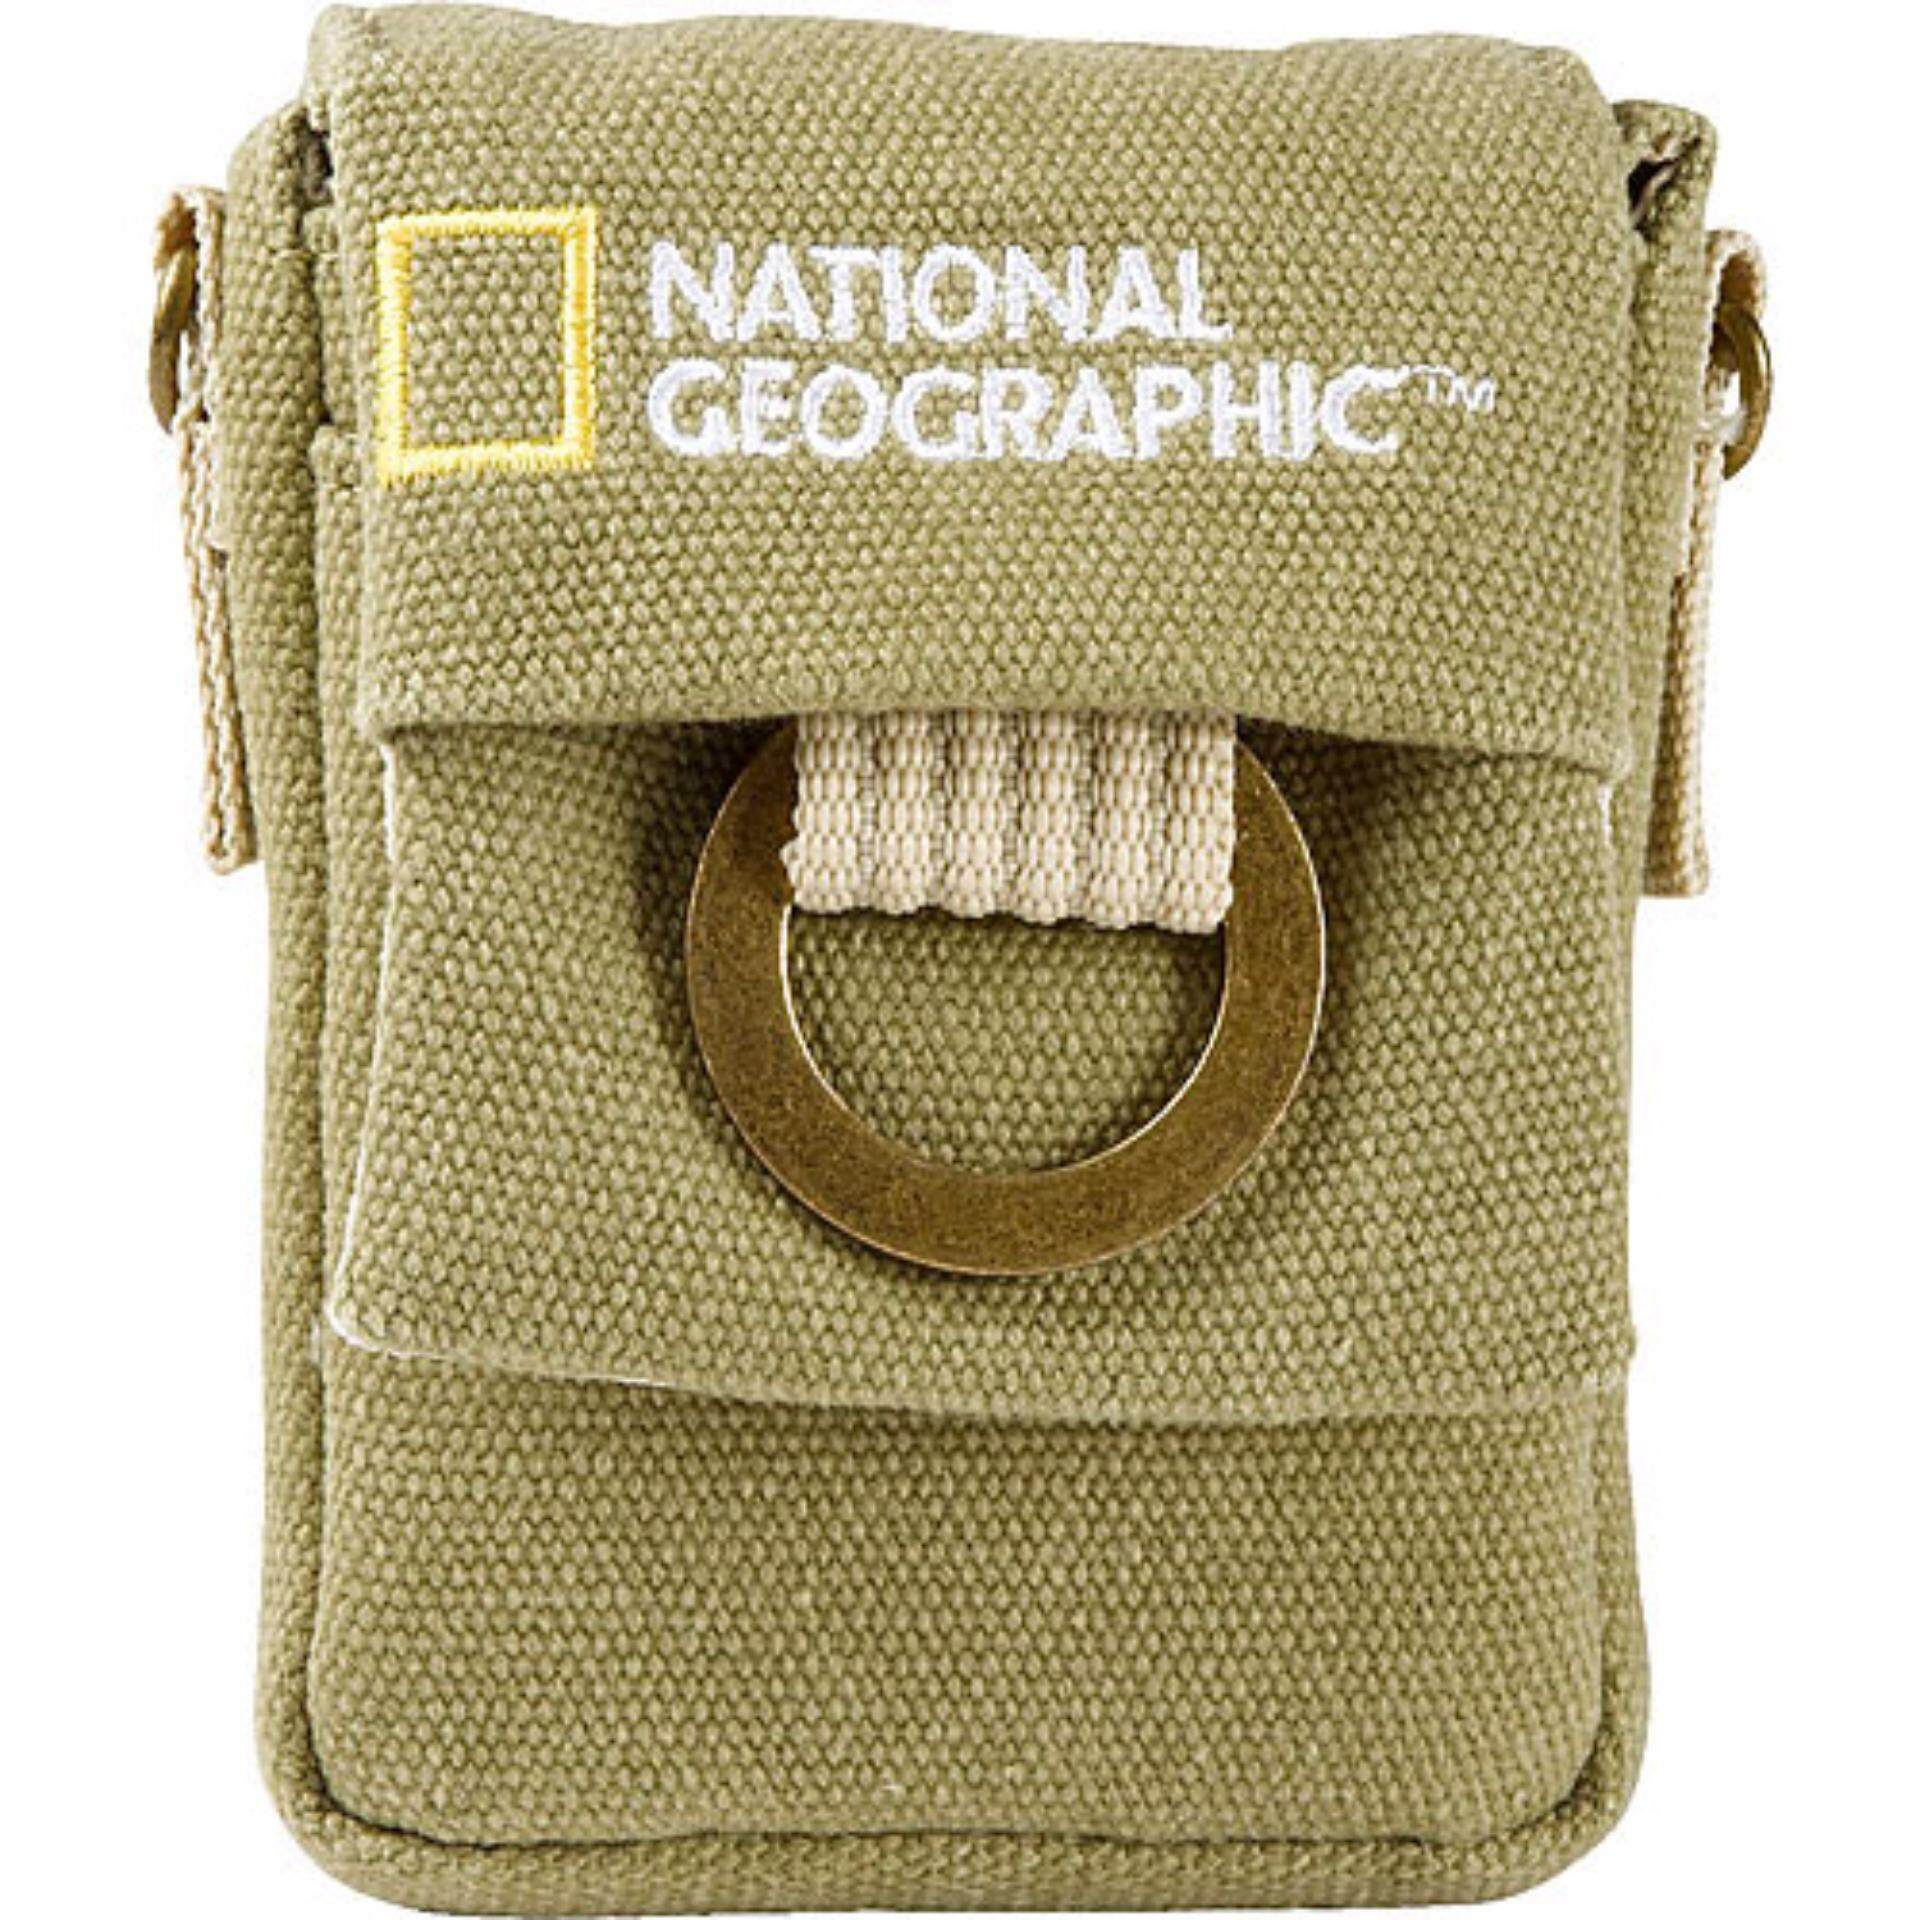 National Geographic NG 1147 Nano Camera Pouch For Small Digital Point and shoot Cameras ซองกระเป๋าสะพายไหล่สะพายข้างกล้องพ้อยแอนด์ชู้ต ซองคาดเอวกล้องพ้อยแอนด์ชู้ต กระเป๋าสะพายไหล่ข้างคาดเอวกล้อง Small Digital Point and shoot  กระเป๋ากล้อง อุปกรณ์เสริม